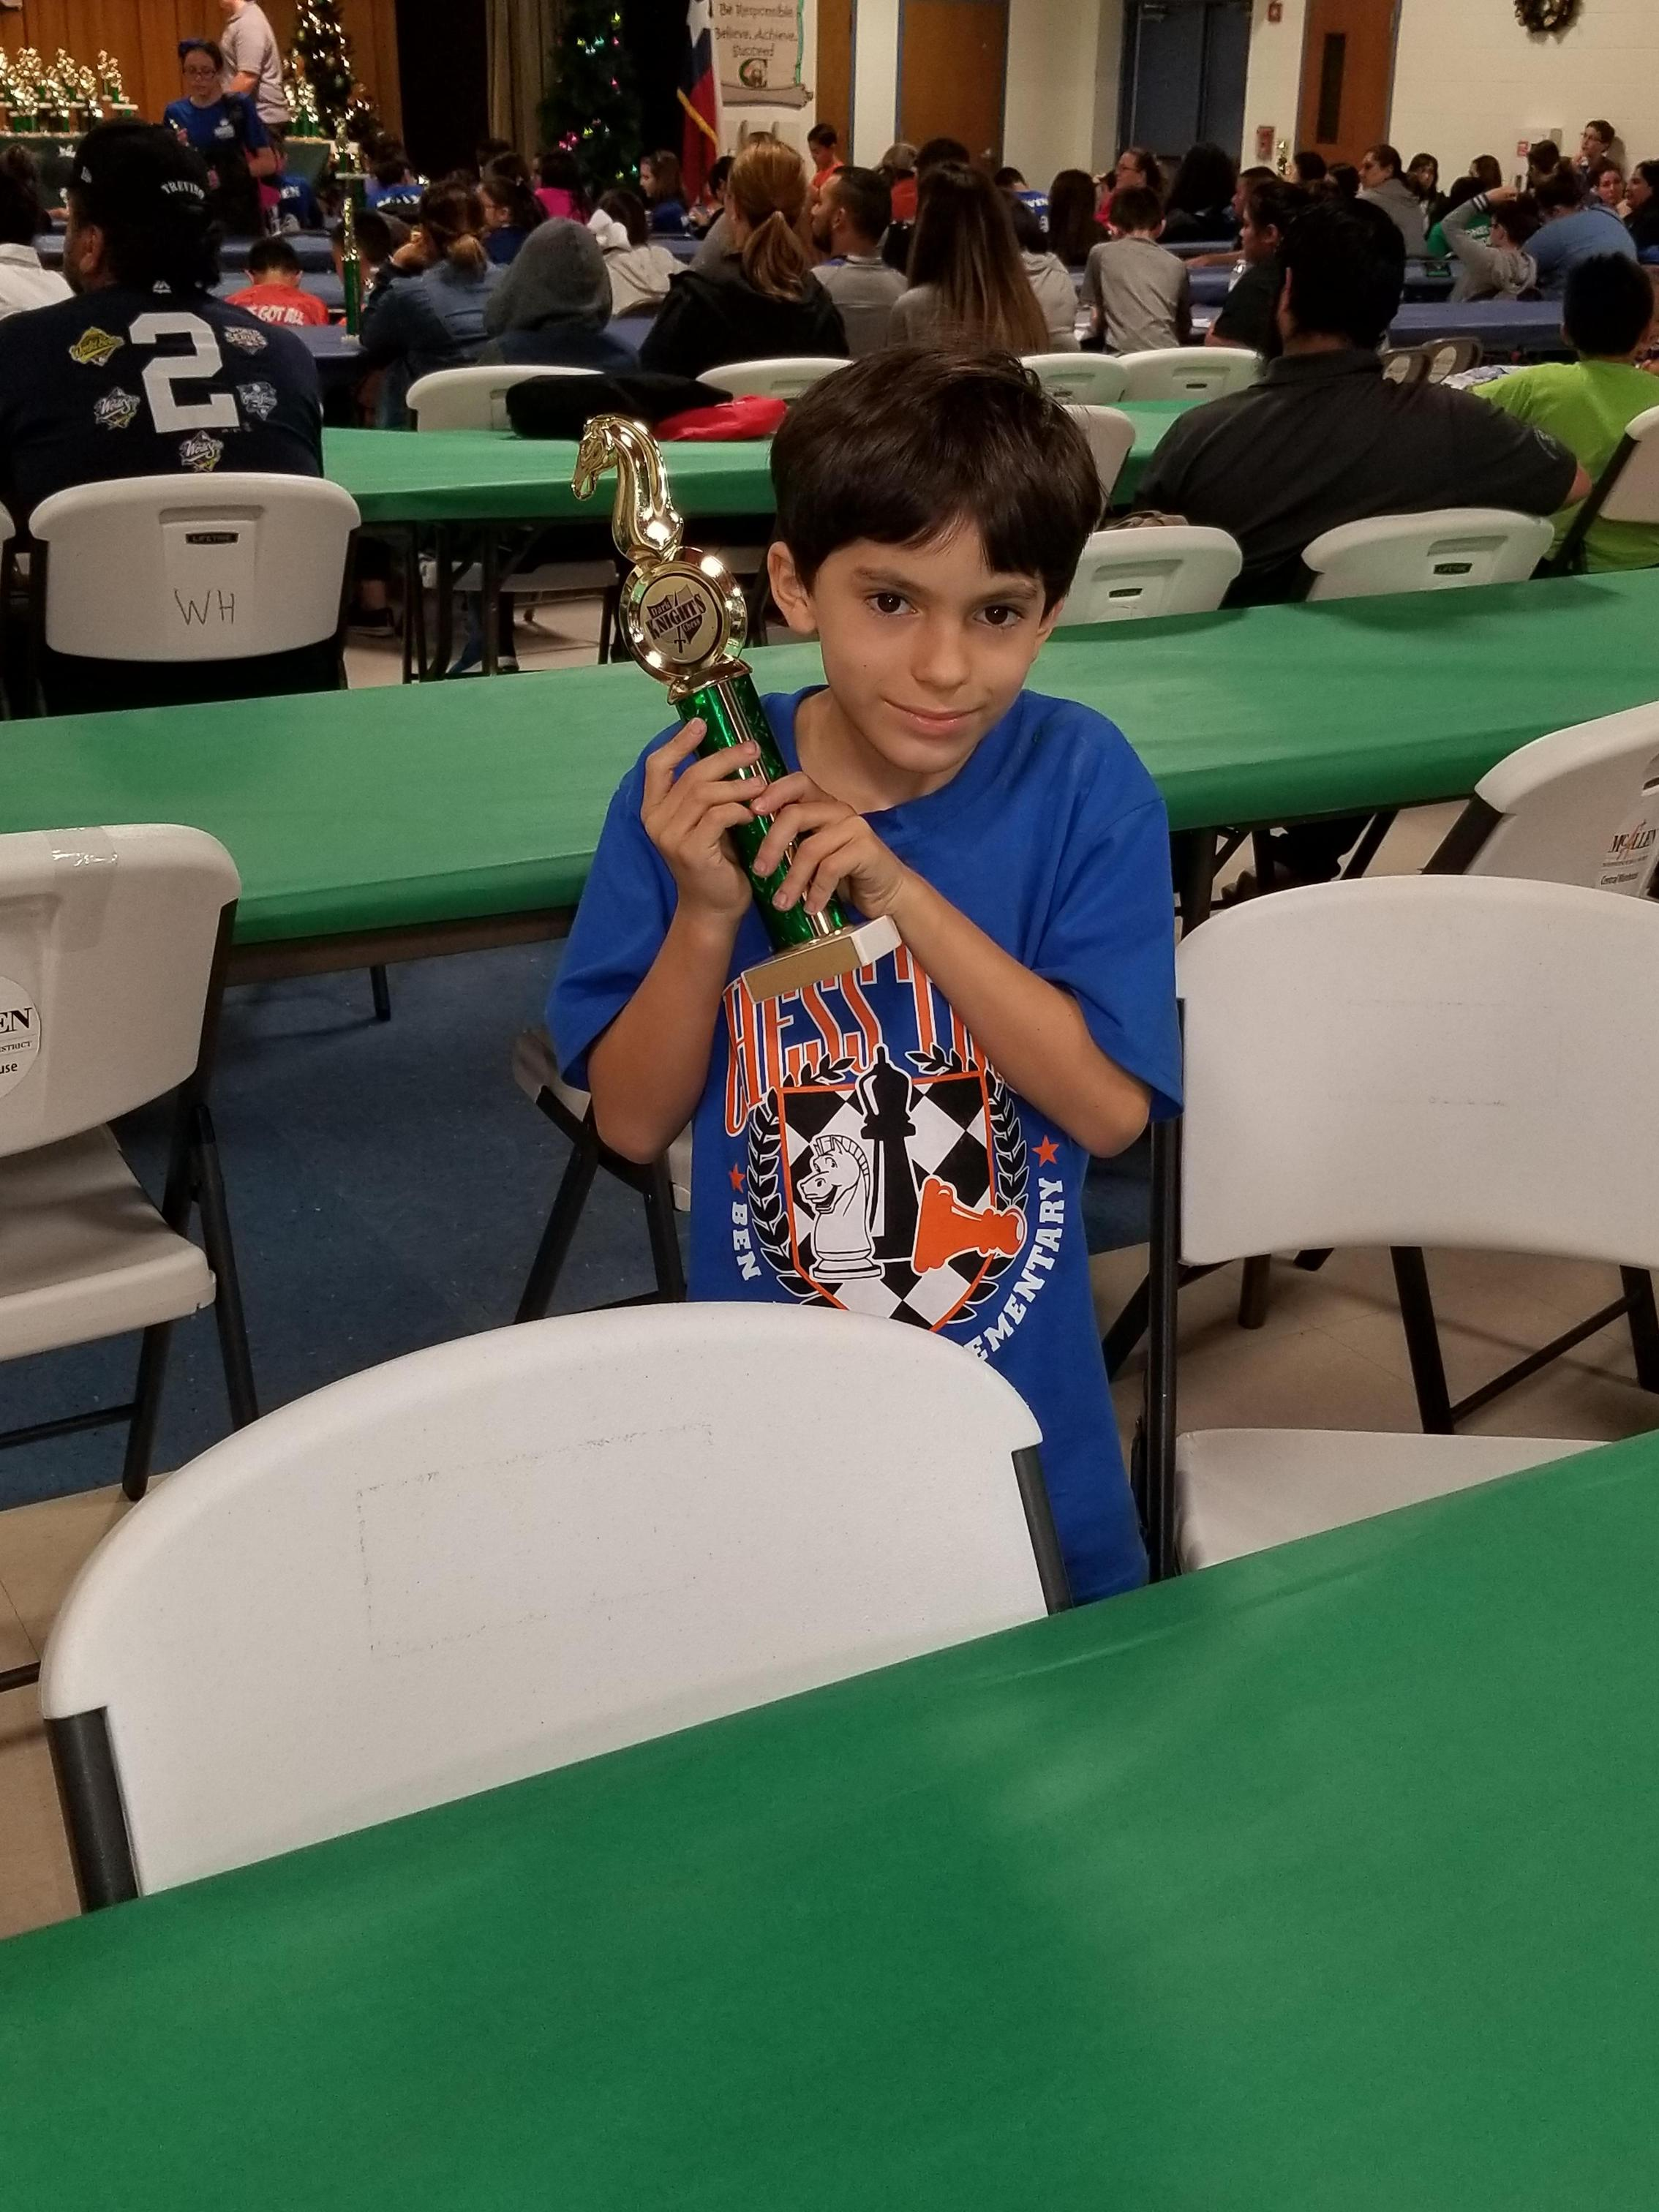 Student with chess trophy.